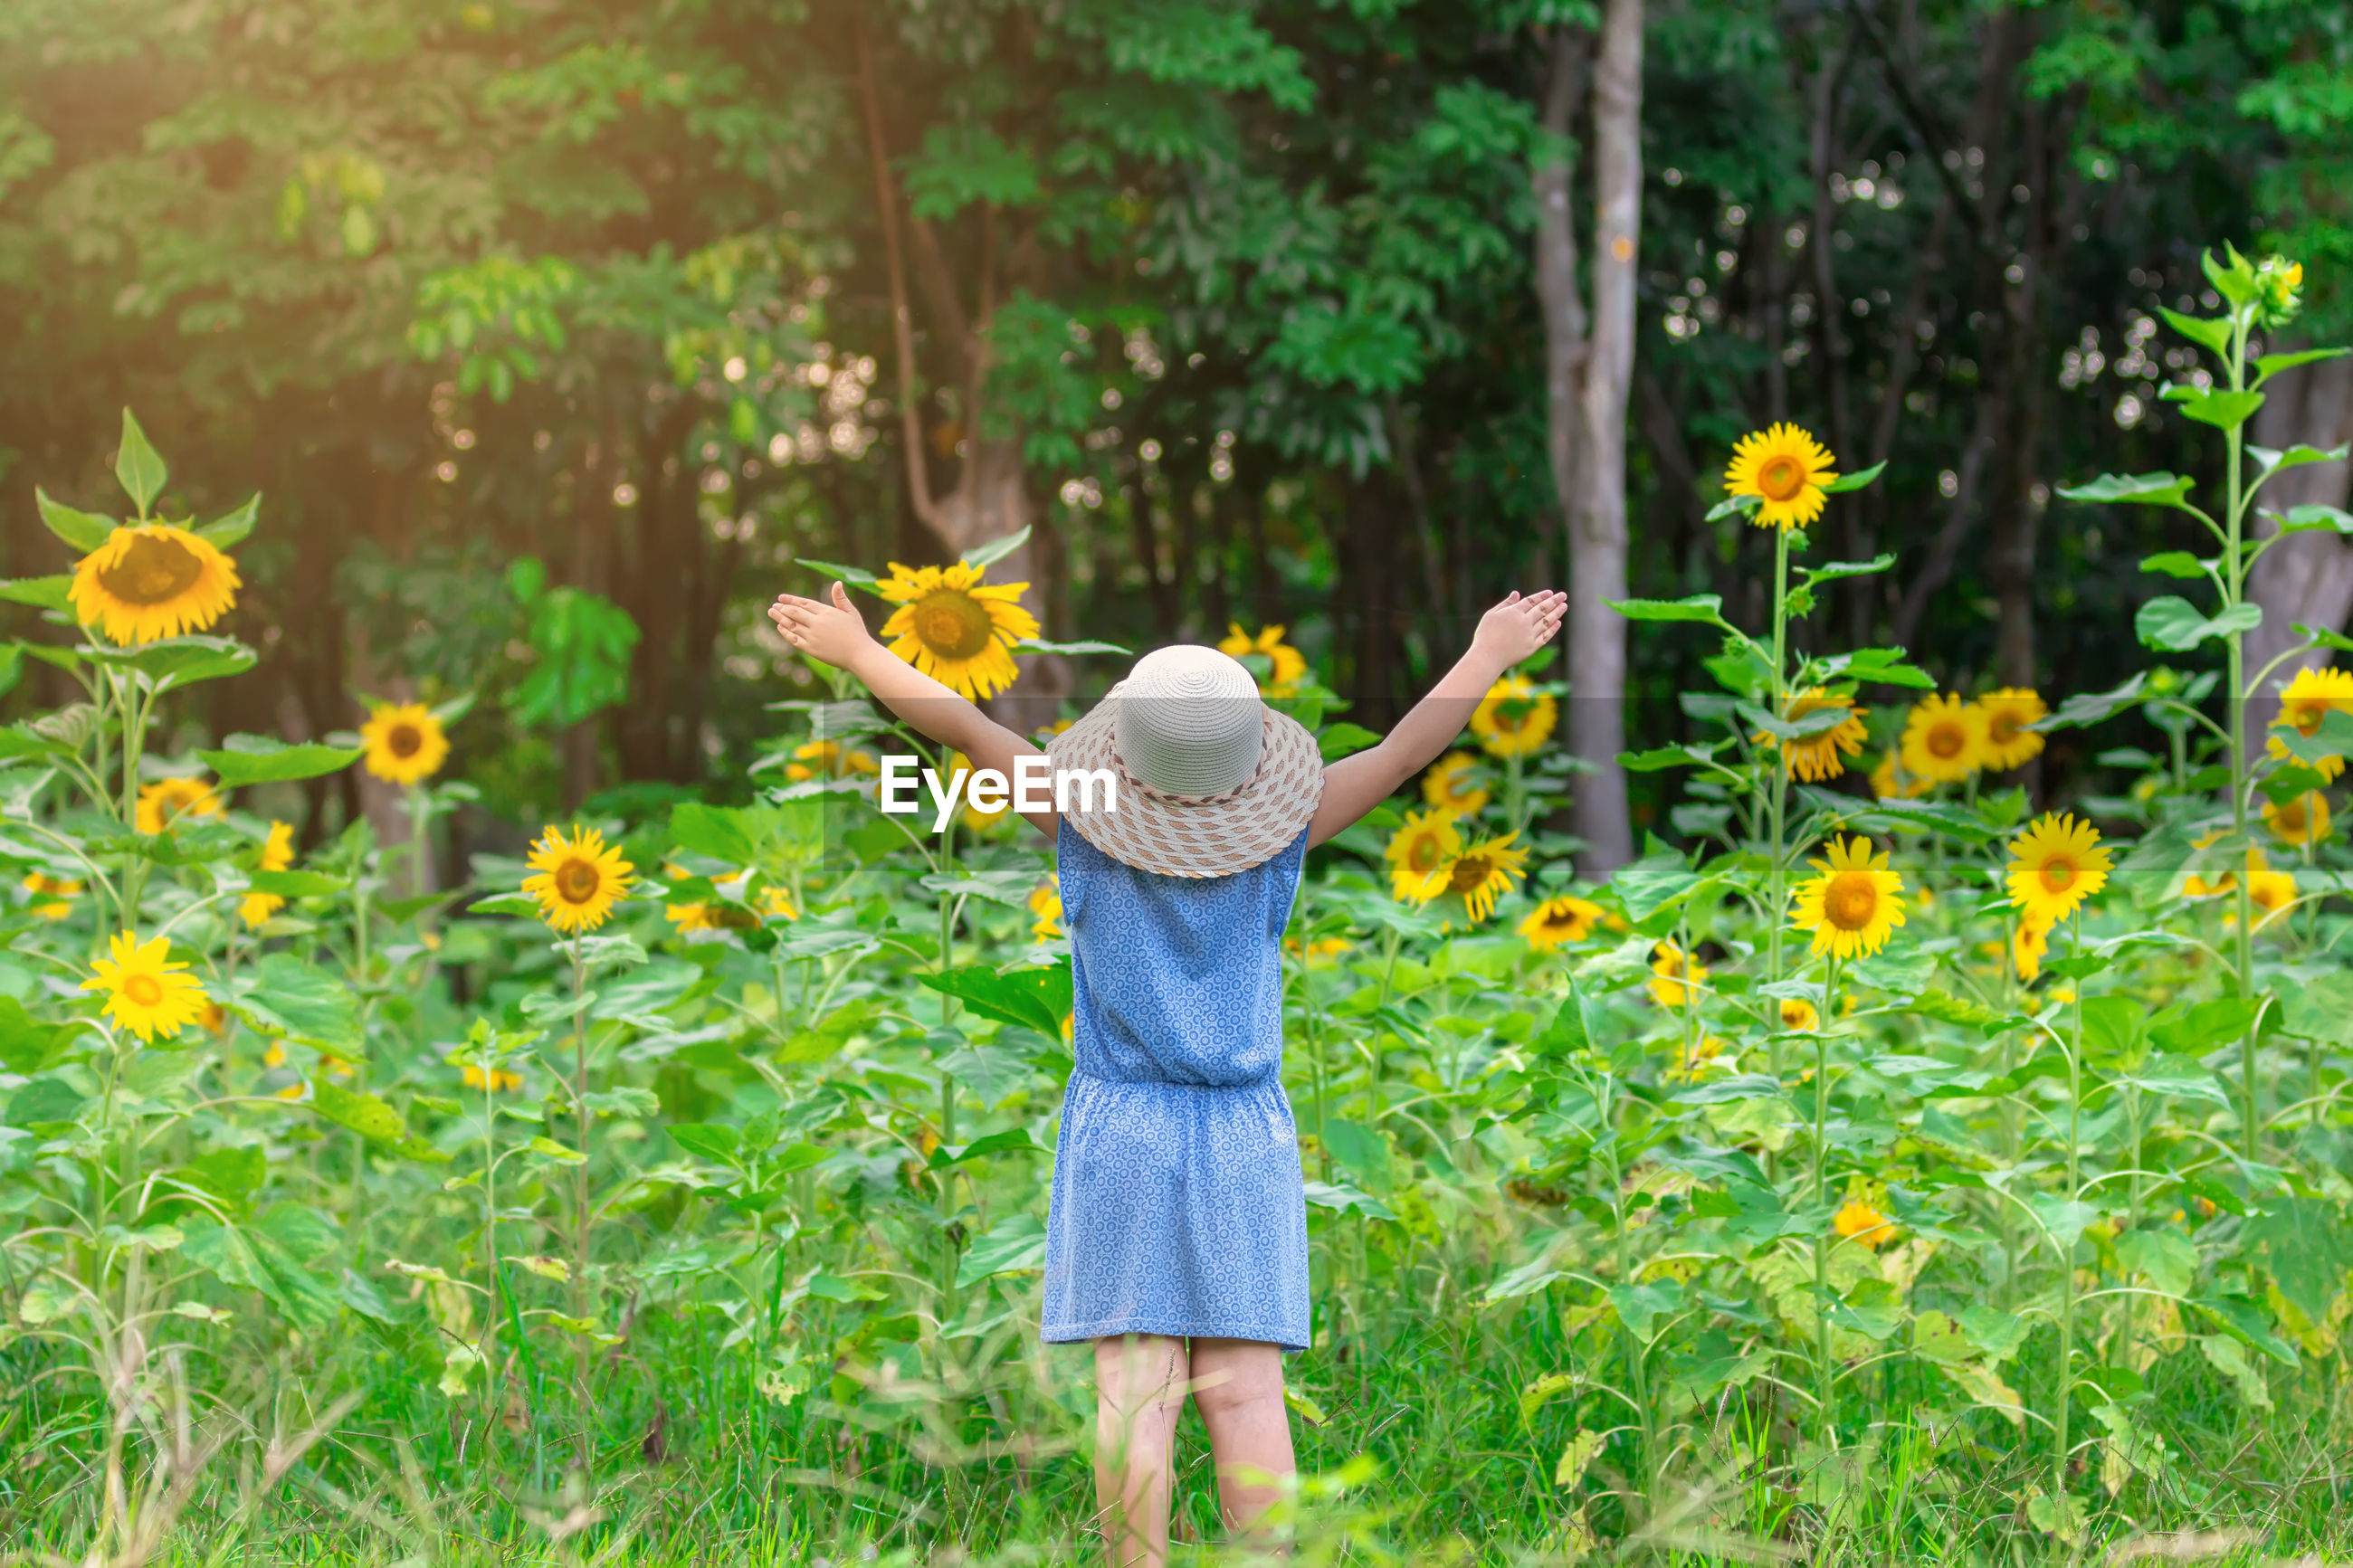 Rear view of woman with arms raised standing by sunflowers on field